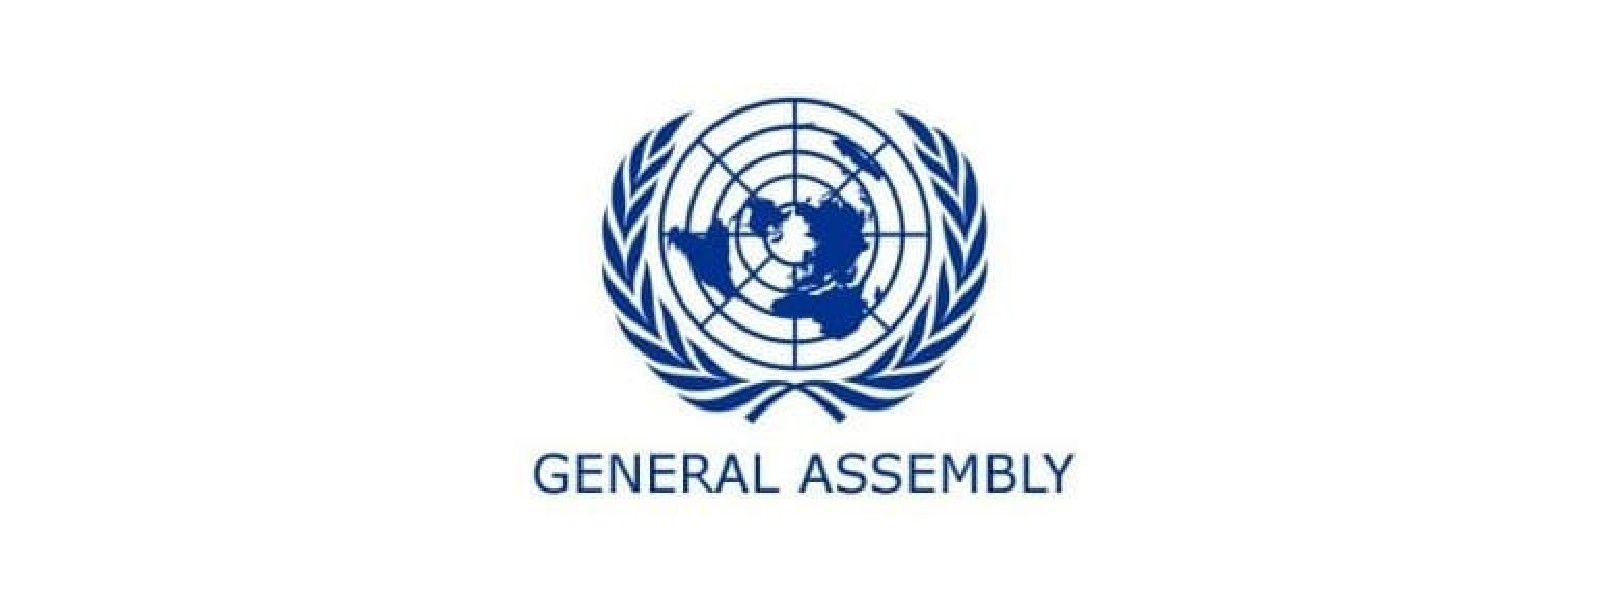 President to address UN General Assembly